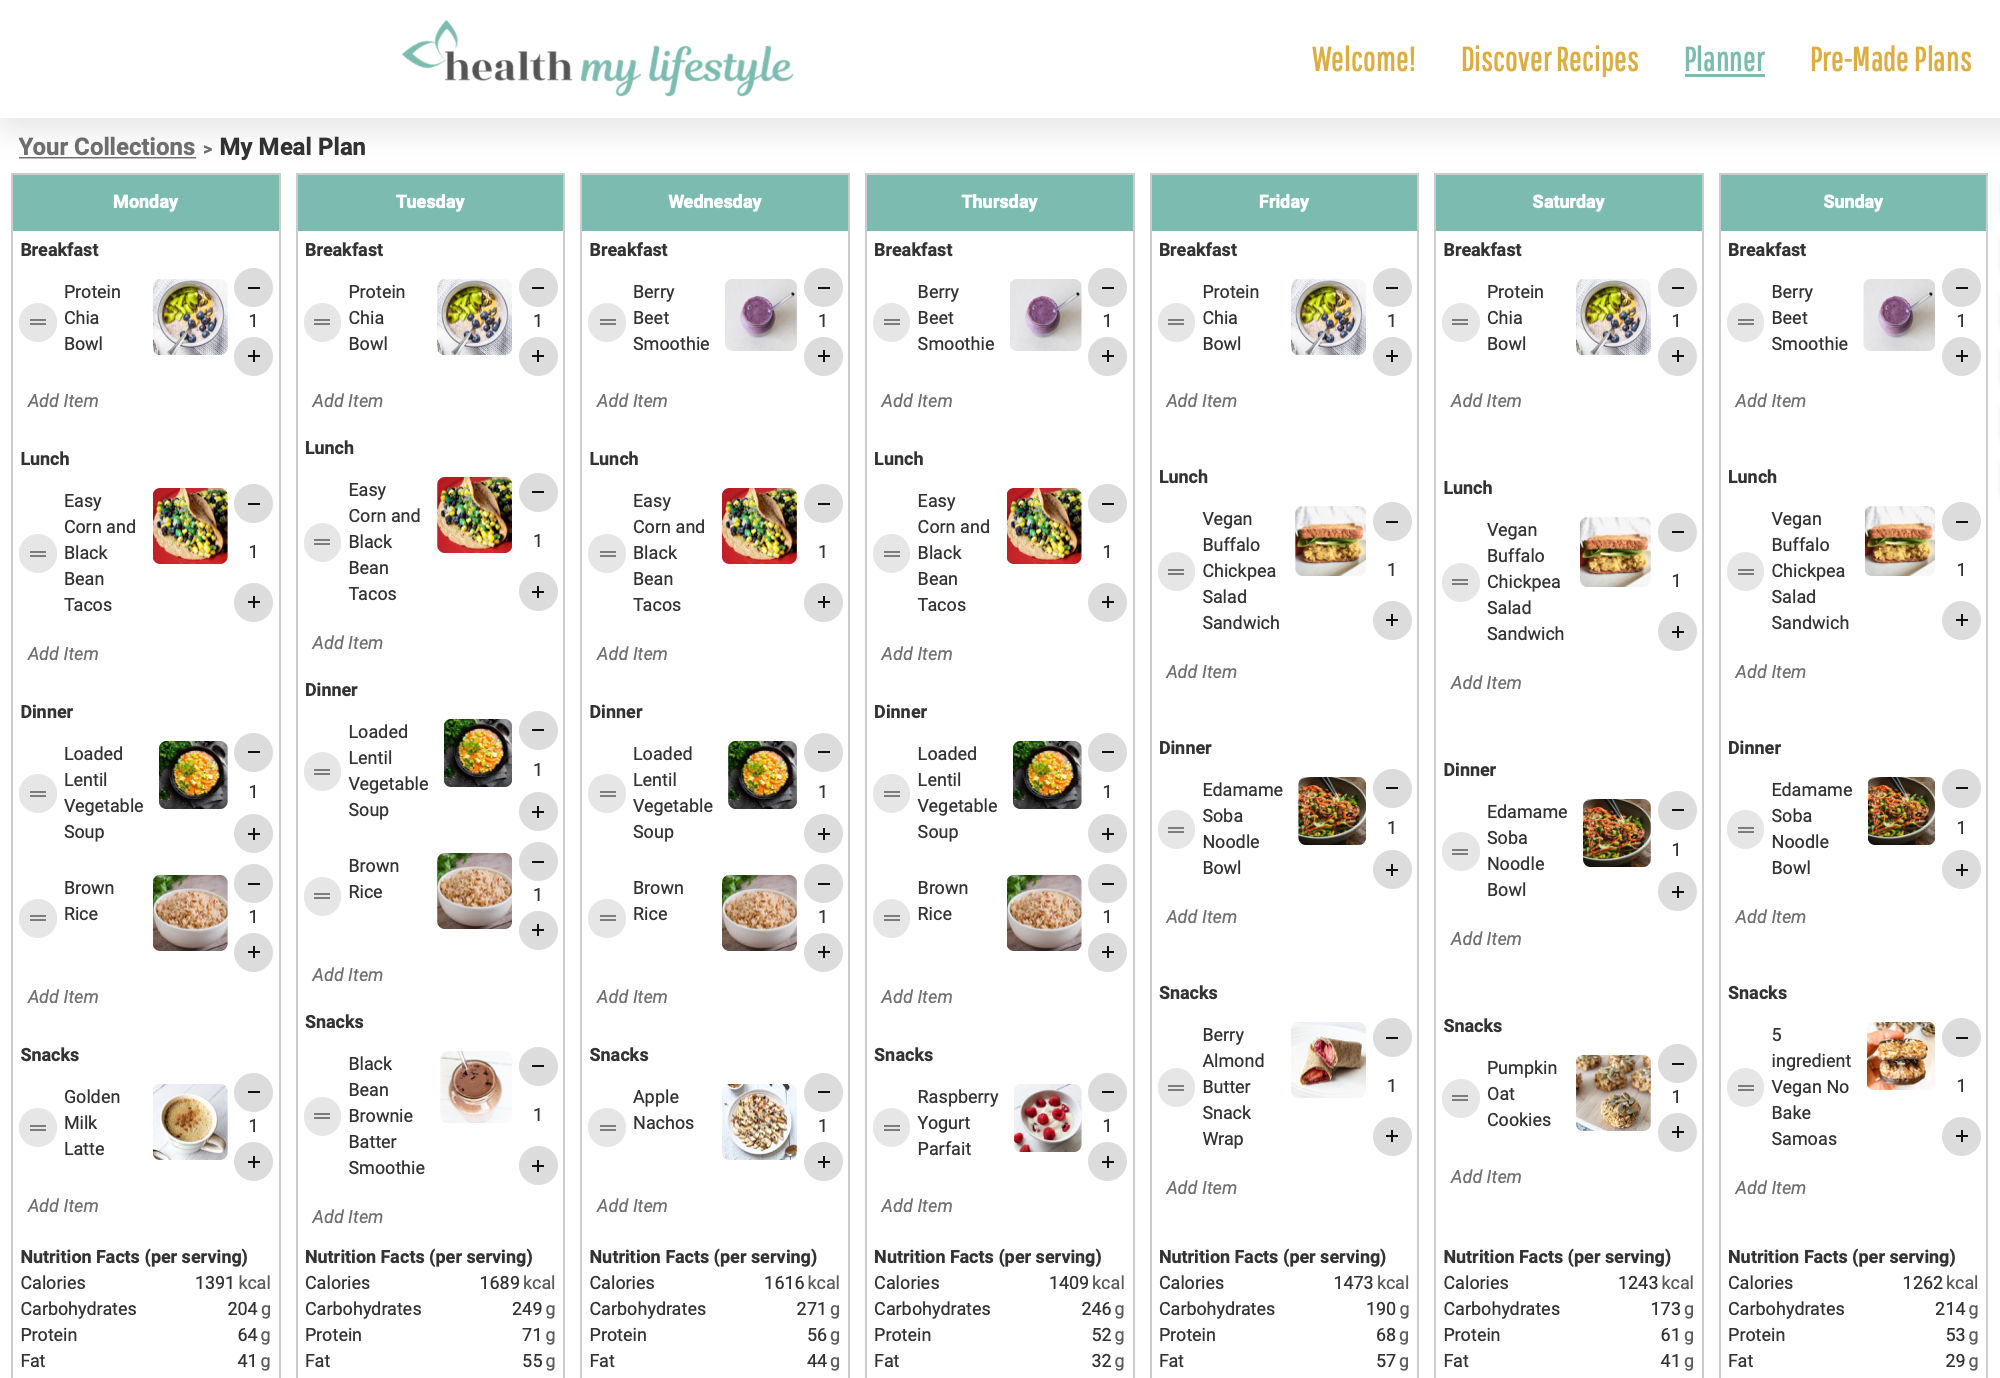 Meal plan schedule with recipes added